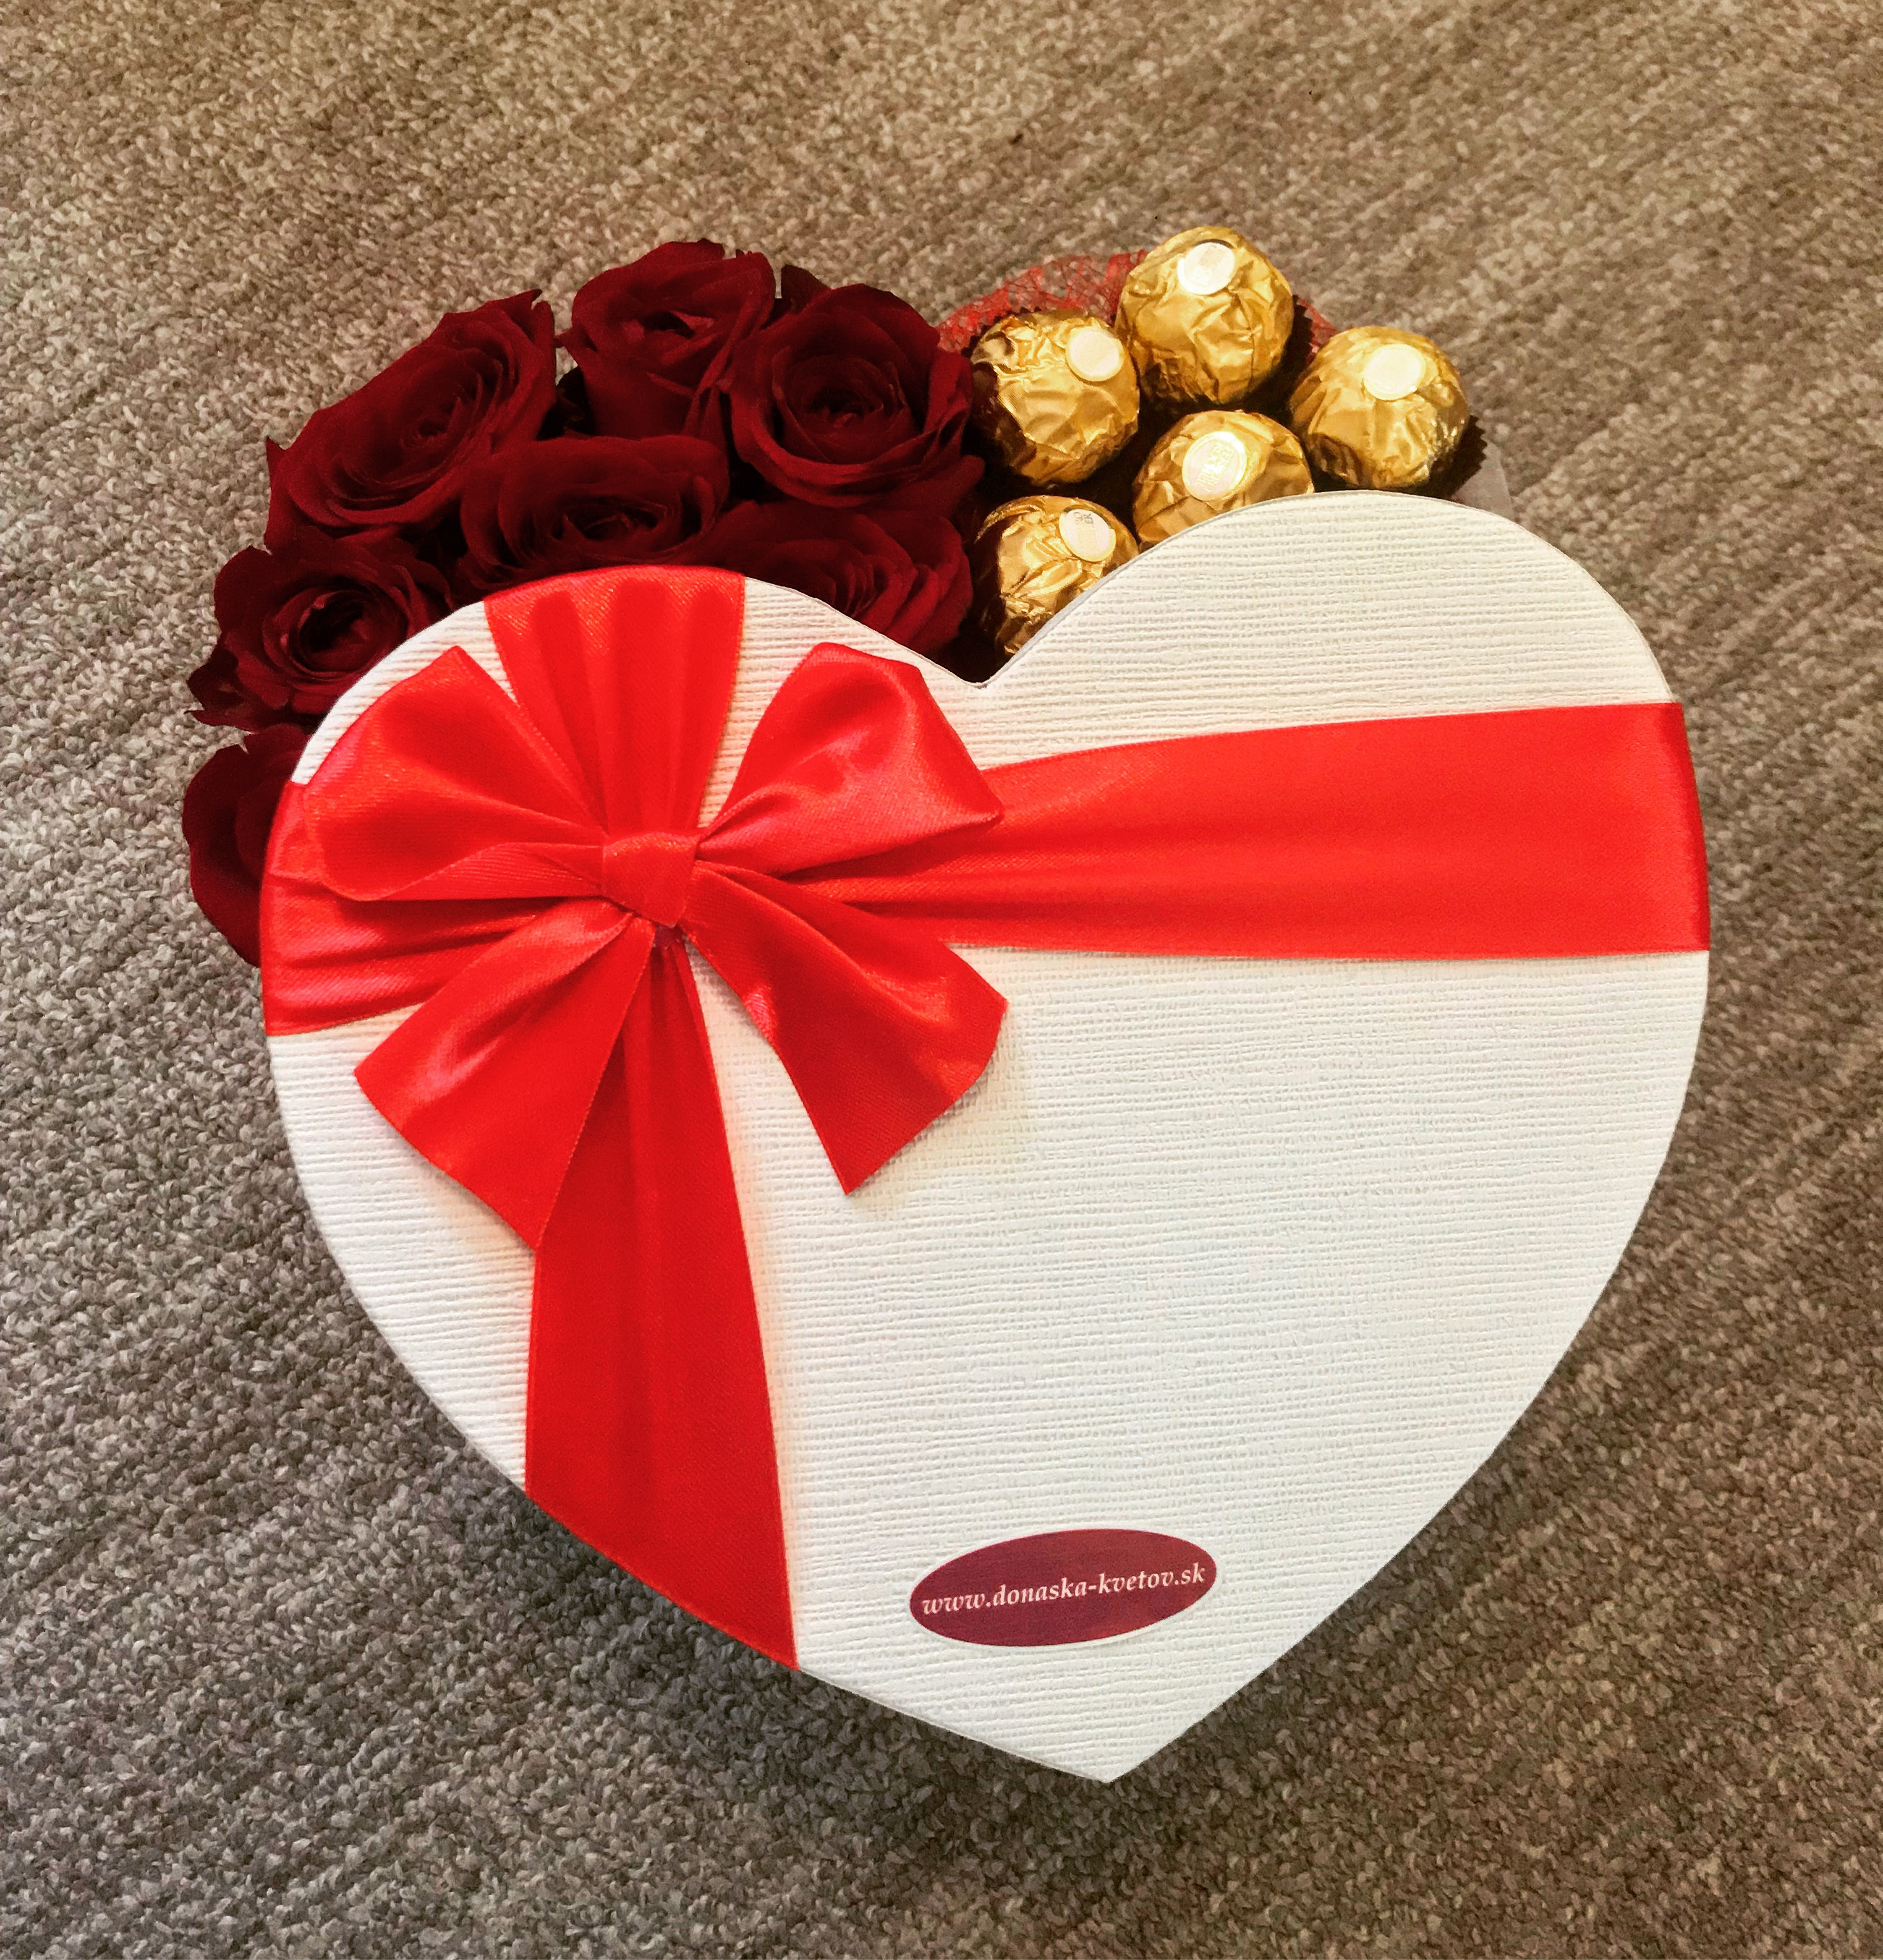 Flower box - Ferrero Rocher 2